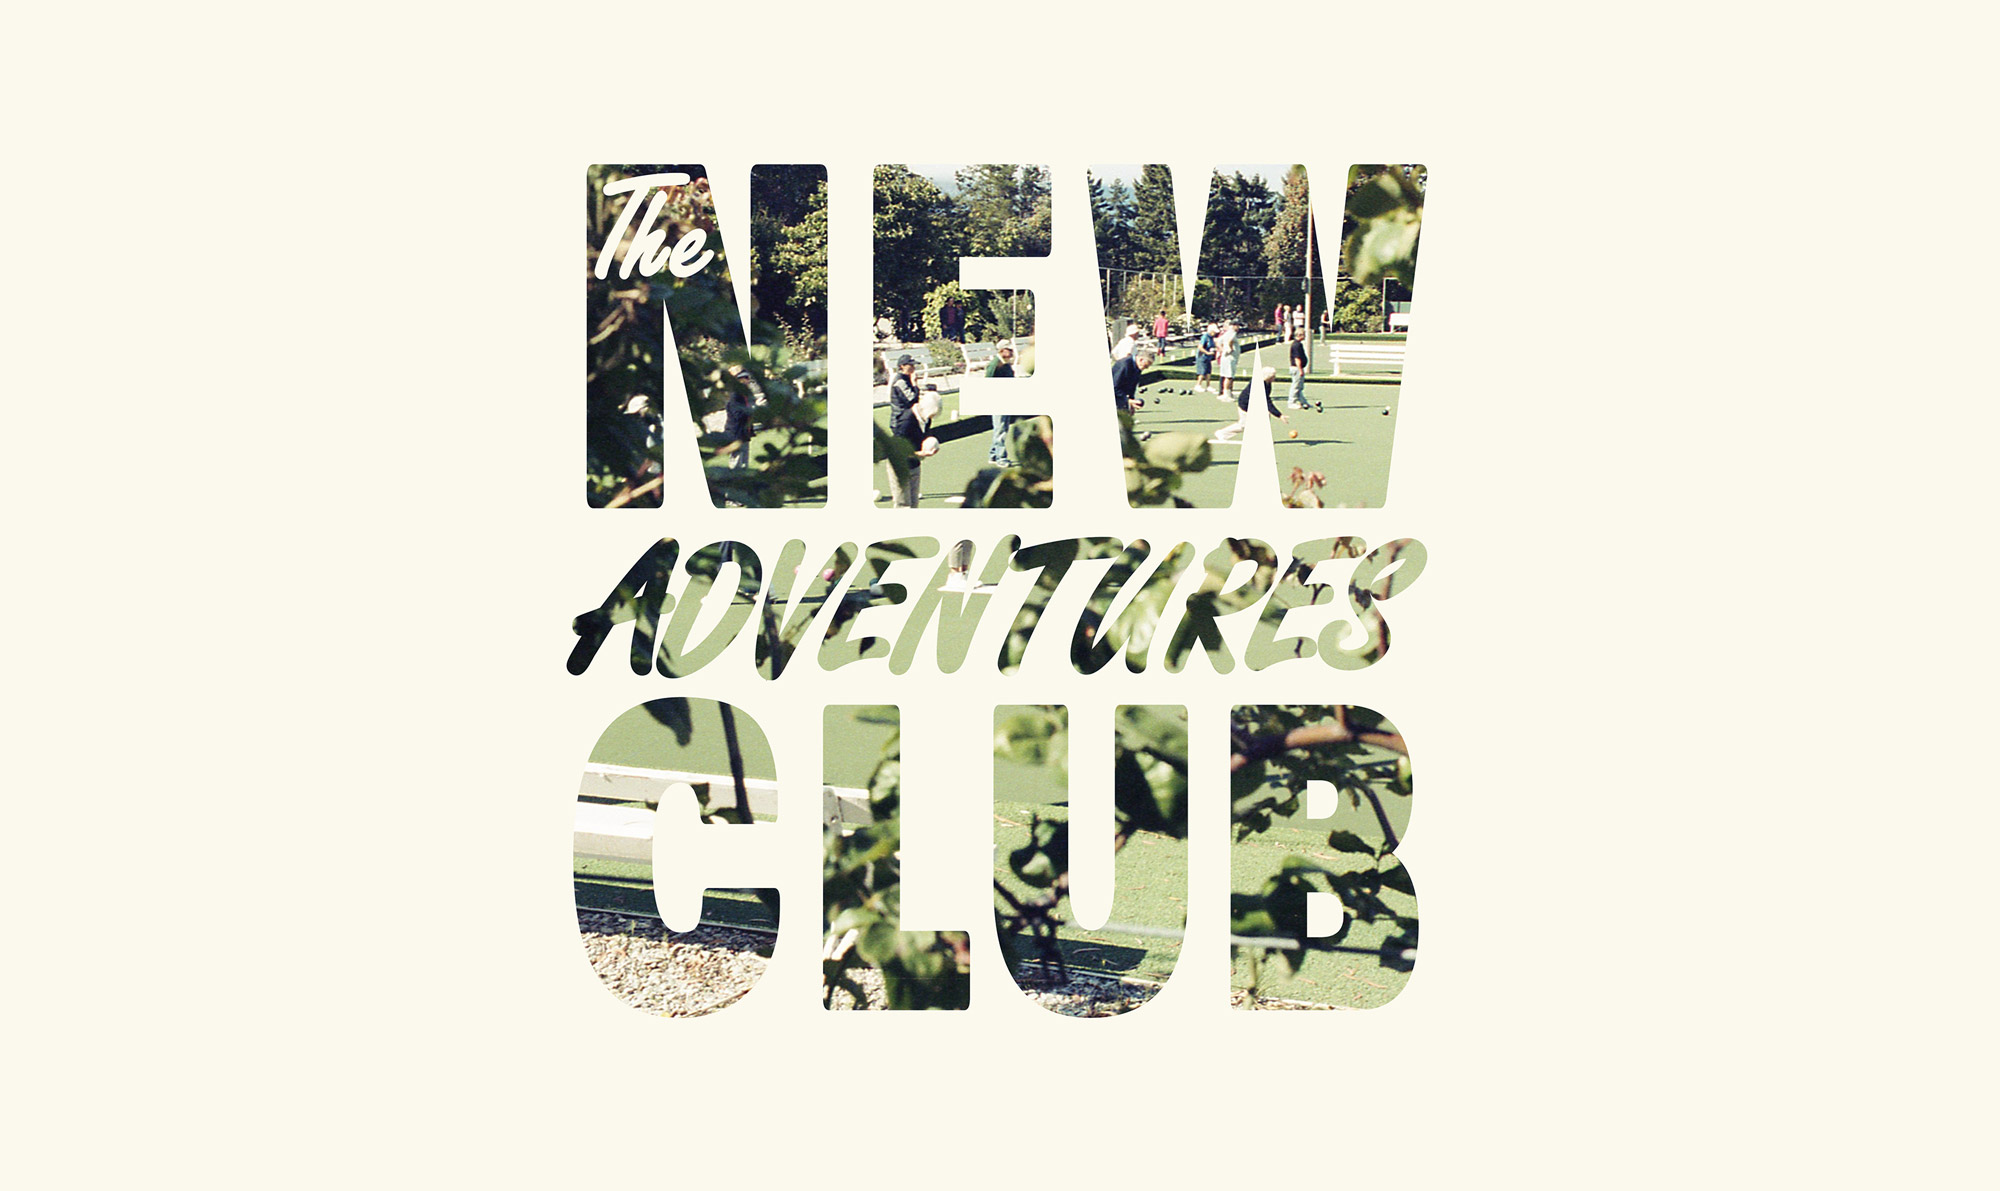 The New Adventures Club seeks out discoveries great and small. The typography acts as a peeping-window into this self-initiated social experiment.